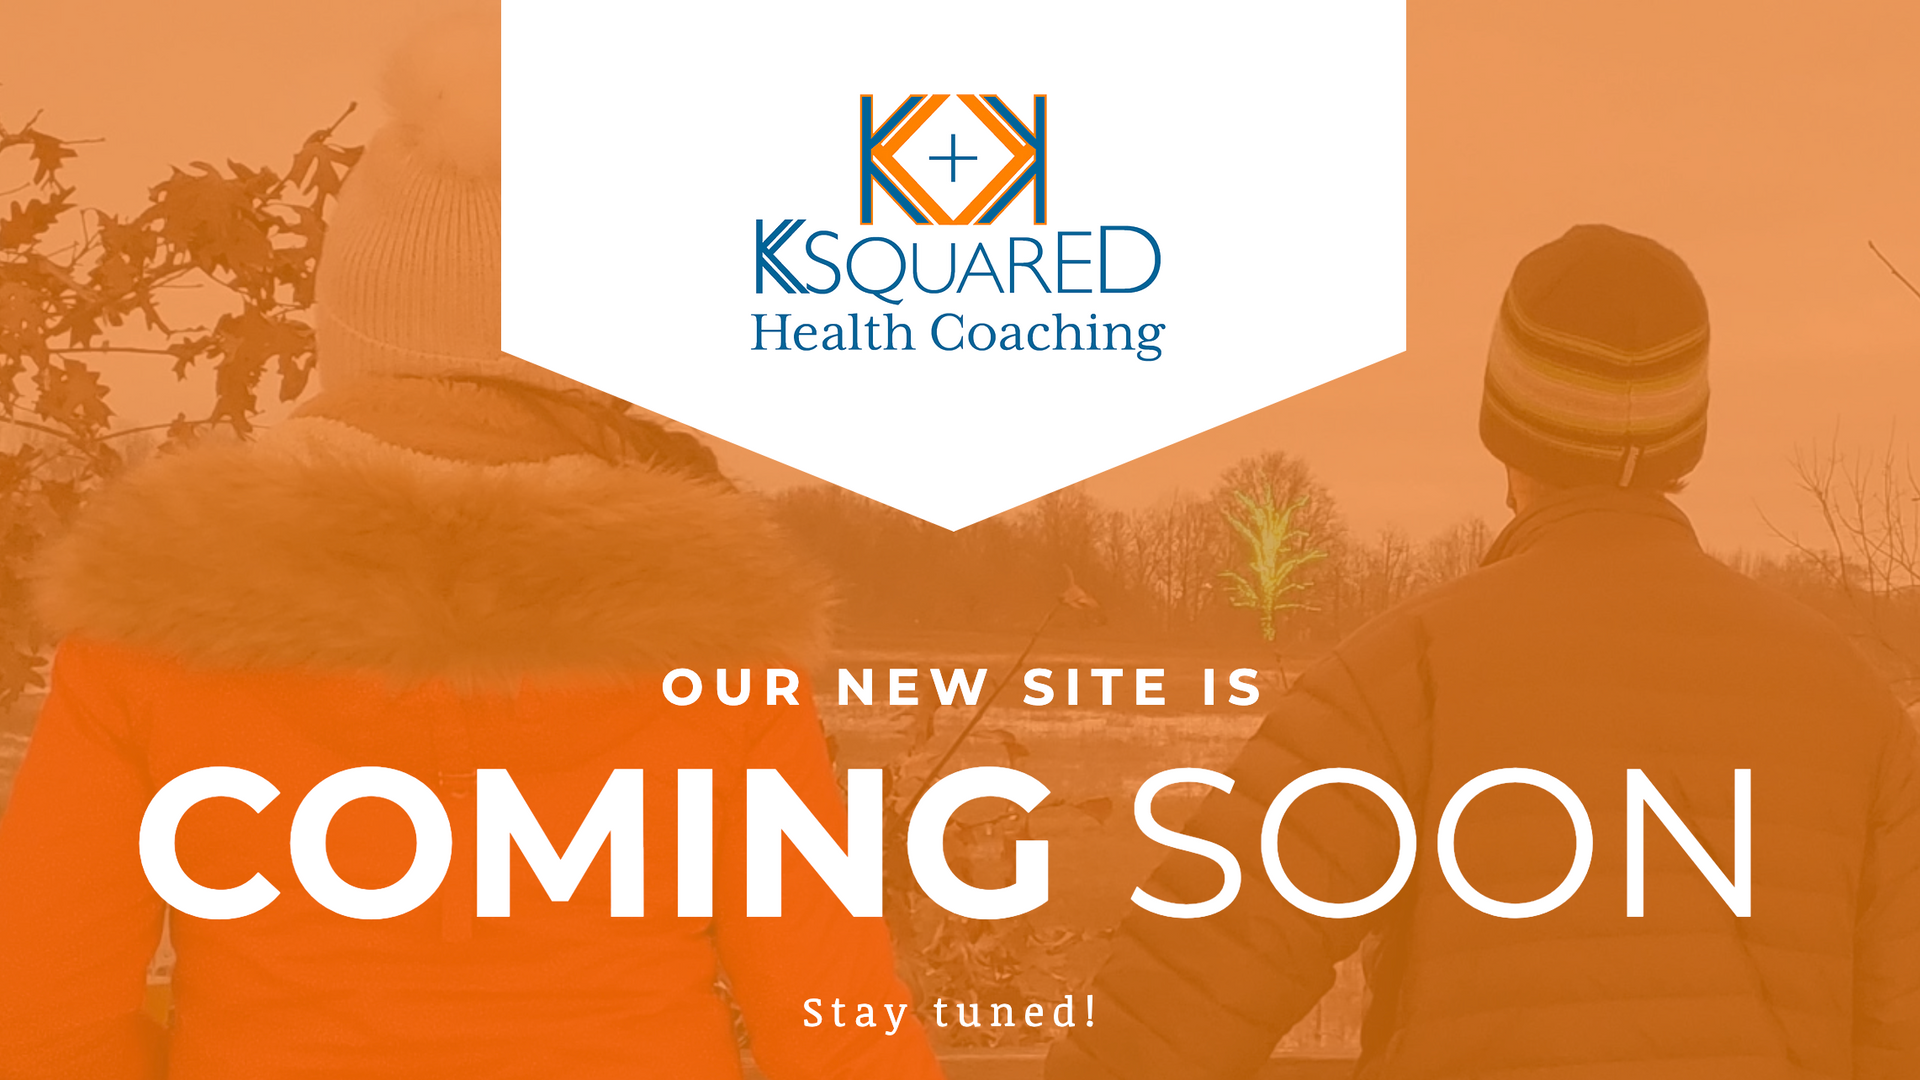 KSquared Health Coaching Website